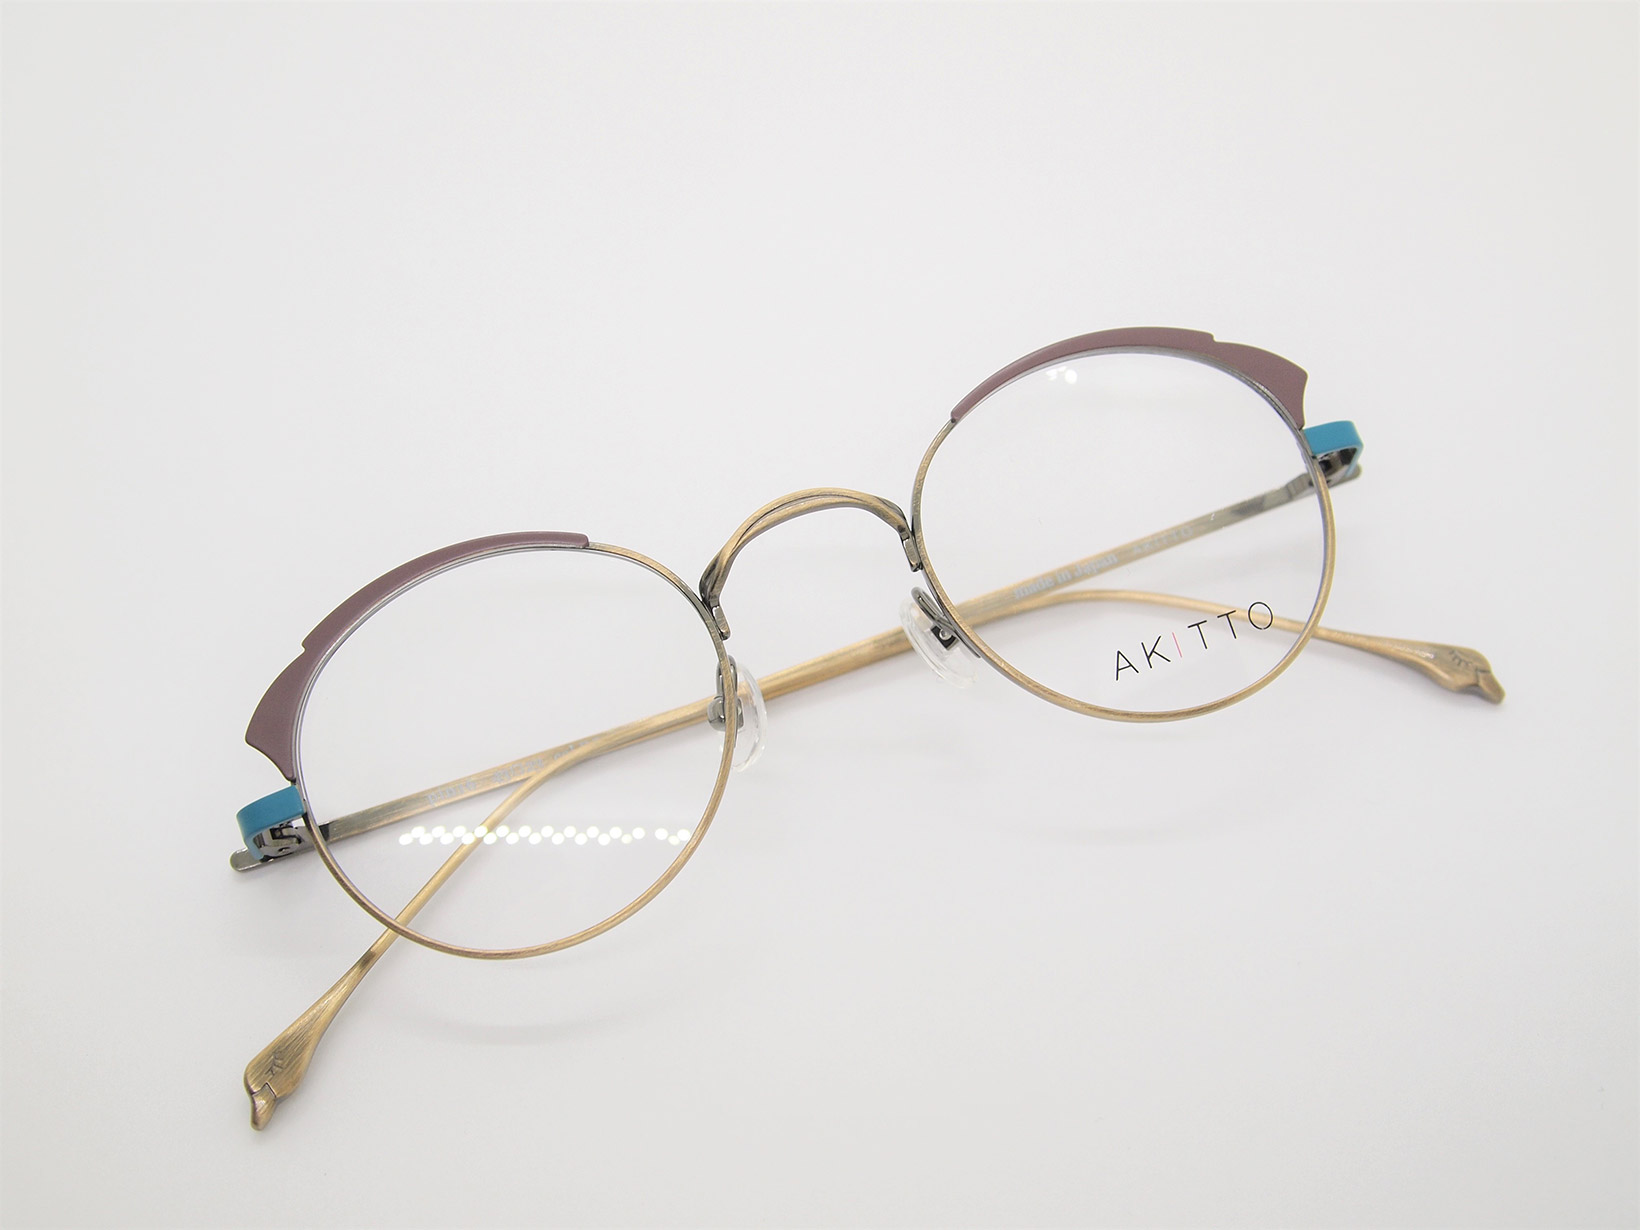 AKITTO 2021-2nd pin16 color|DB size:43□23 material:titanium+FC price:¥46,200-(税込み)